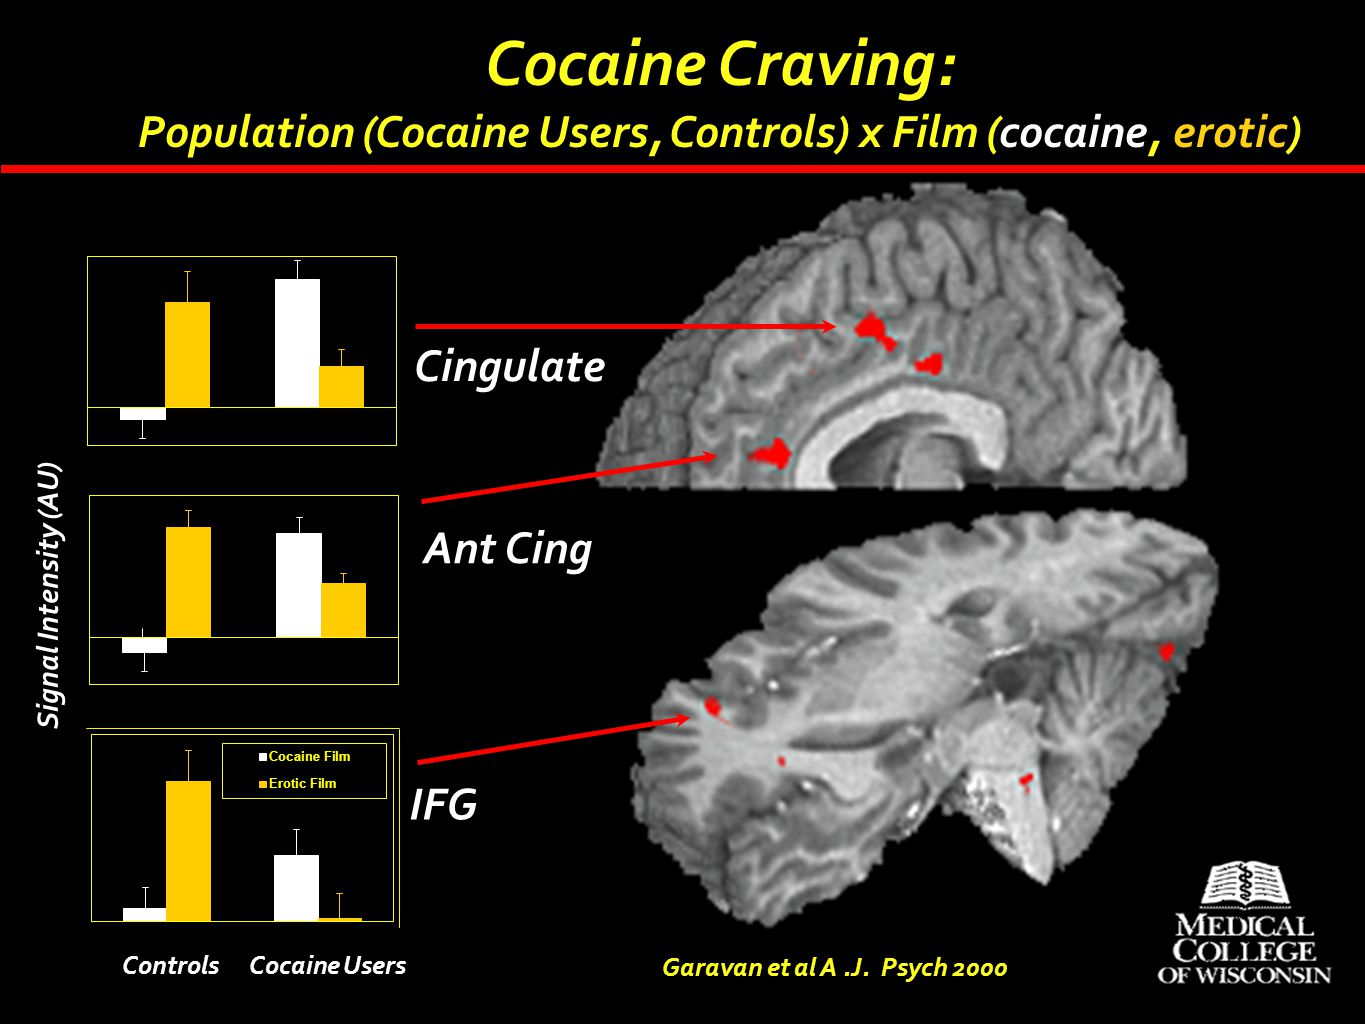 Cocaine Craving: Population (Cocaine Users, Controls) x Film (cocaine, erotic) Cingulate. Ant Cing.